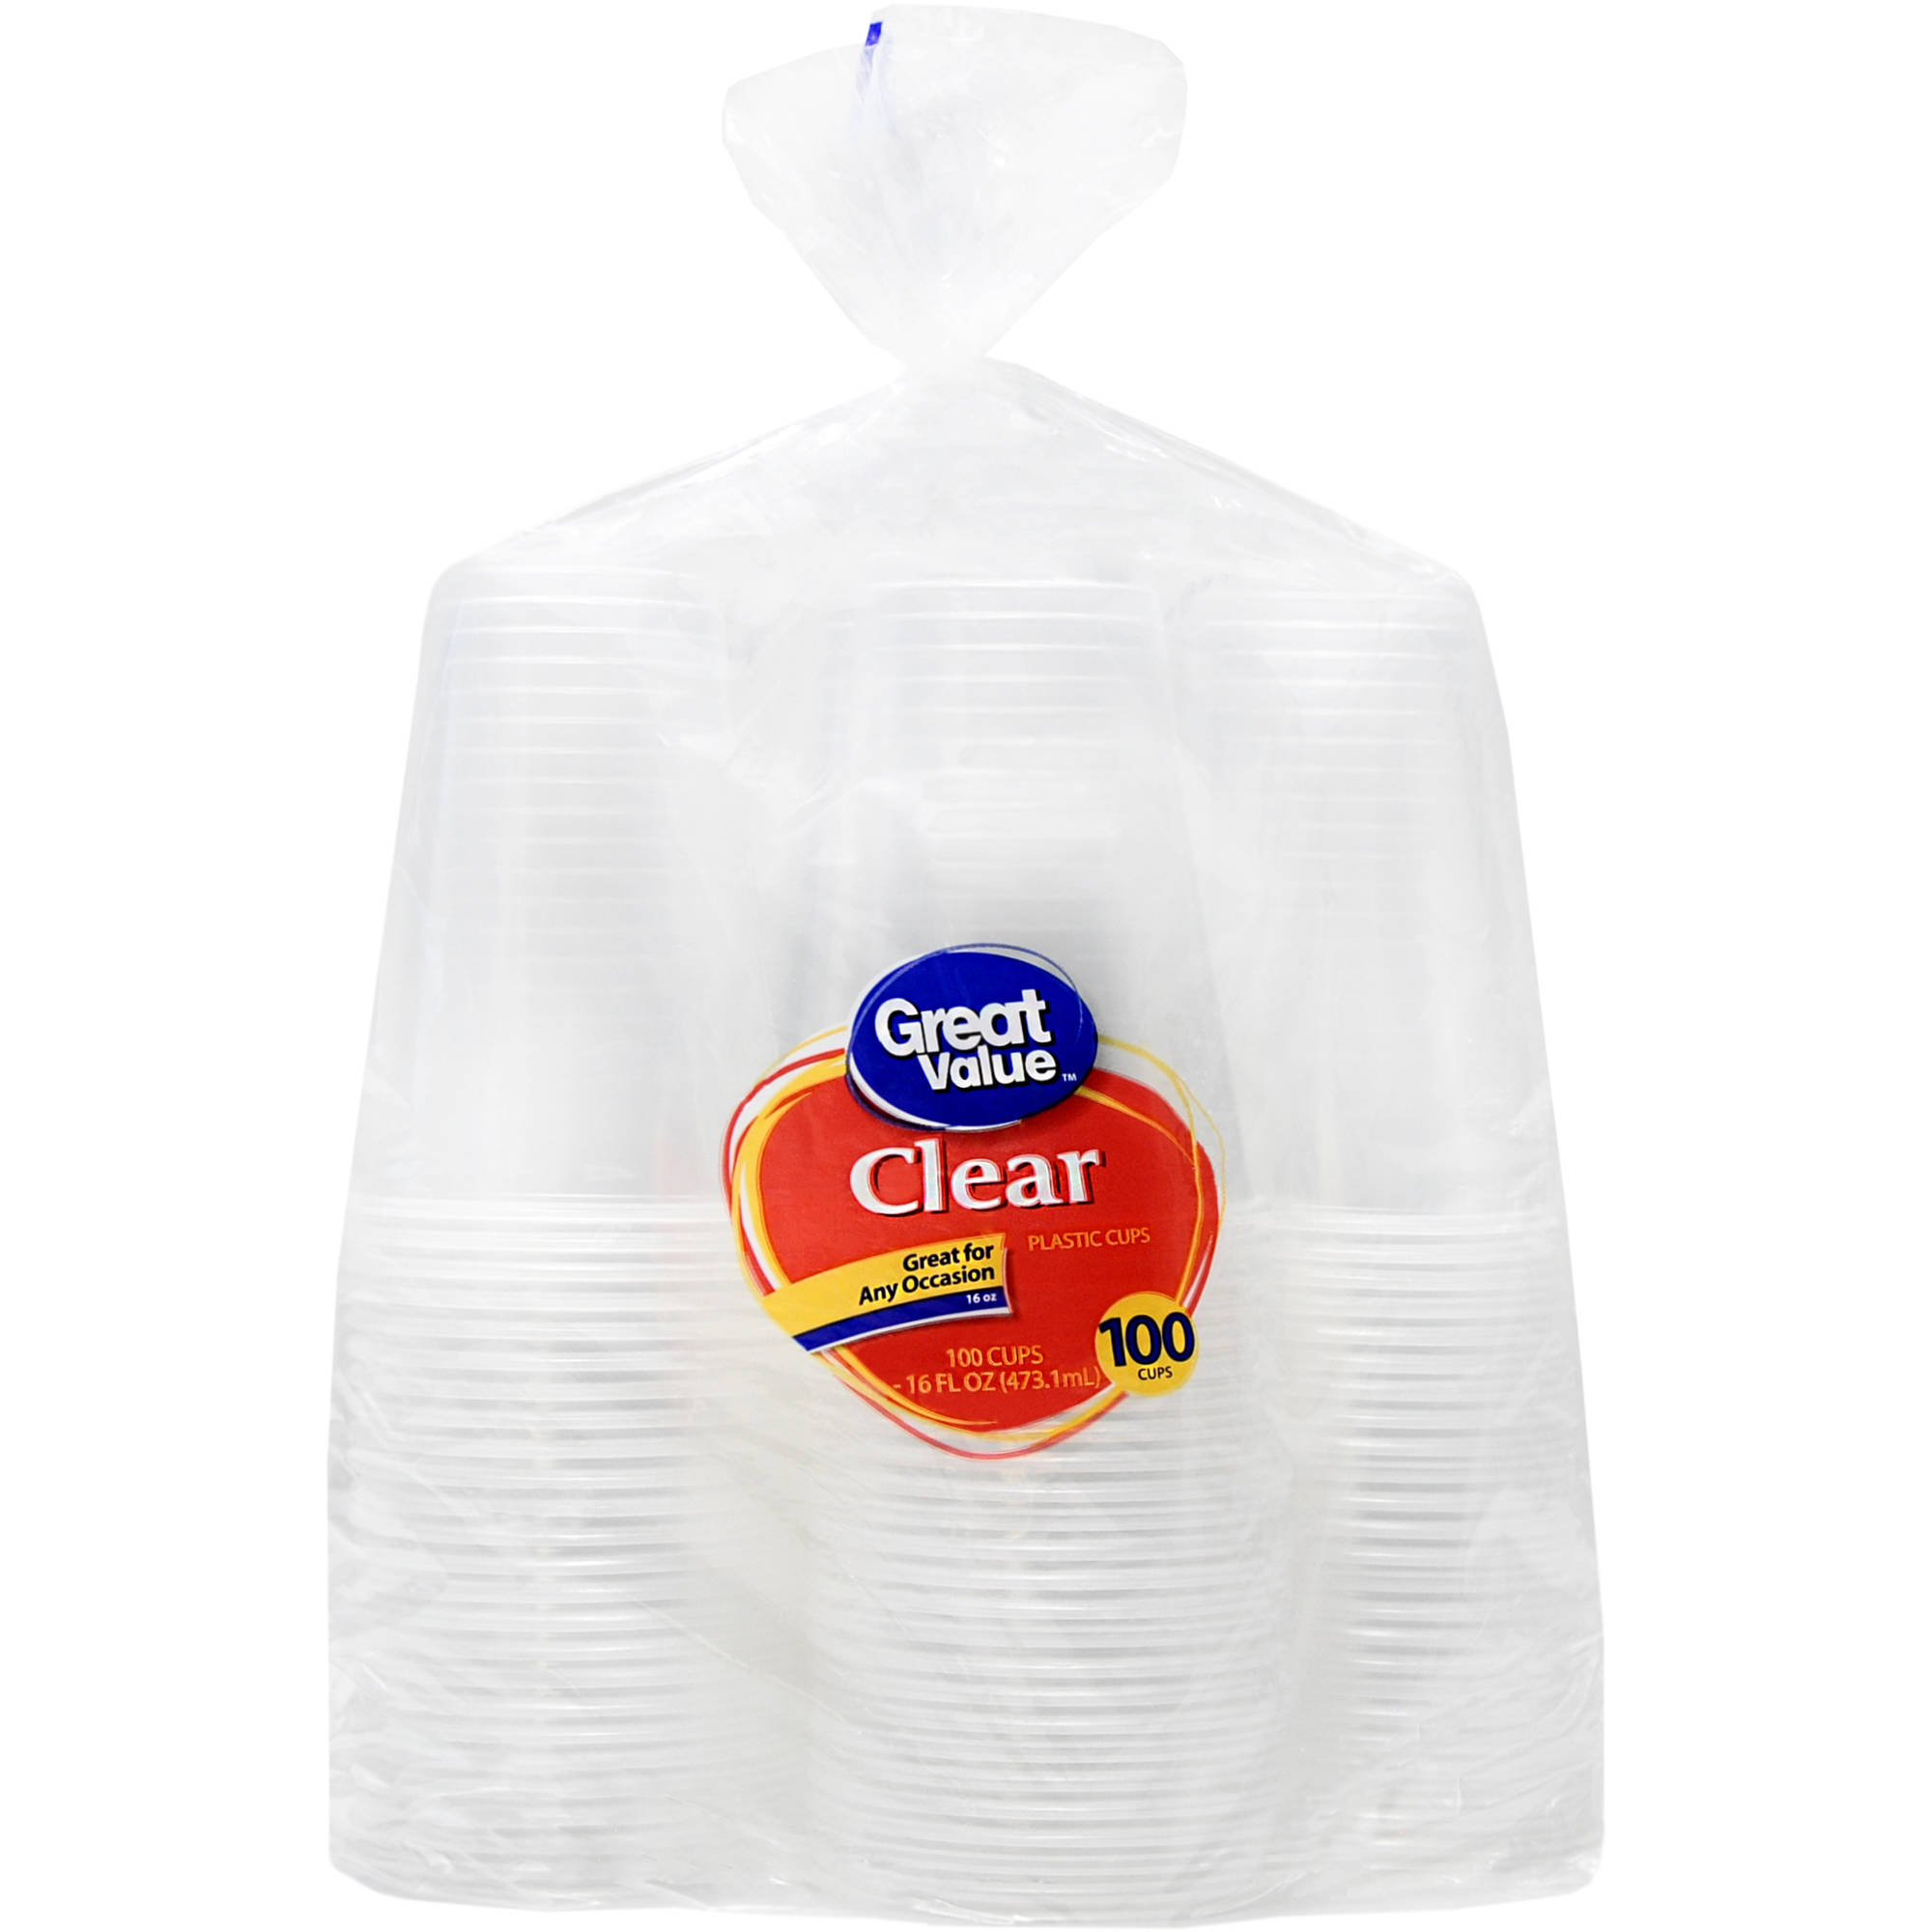 Great Value Clear Cups, 16 fl oz, 100 count